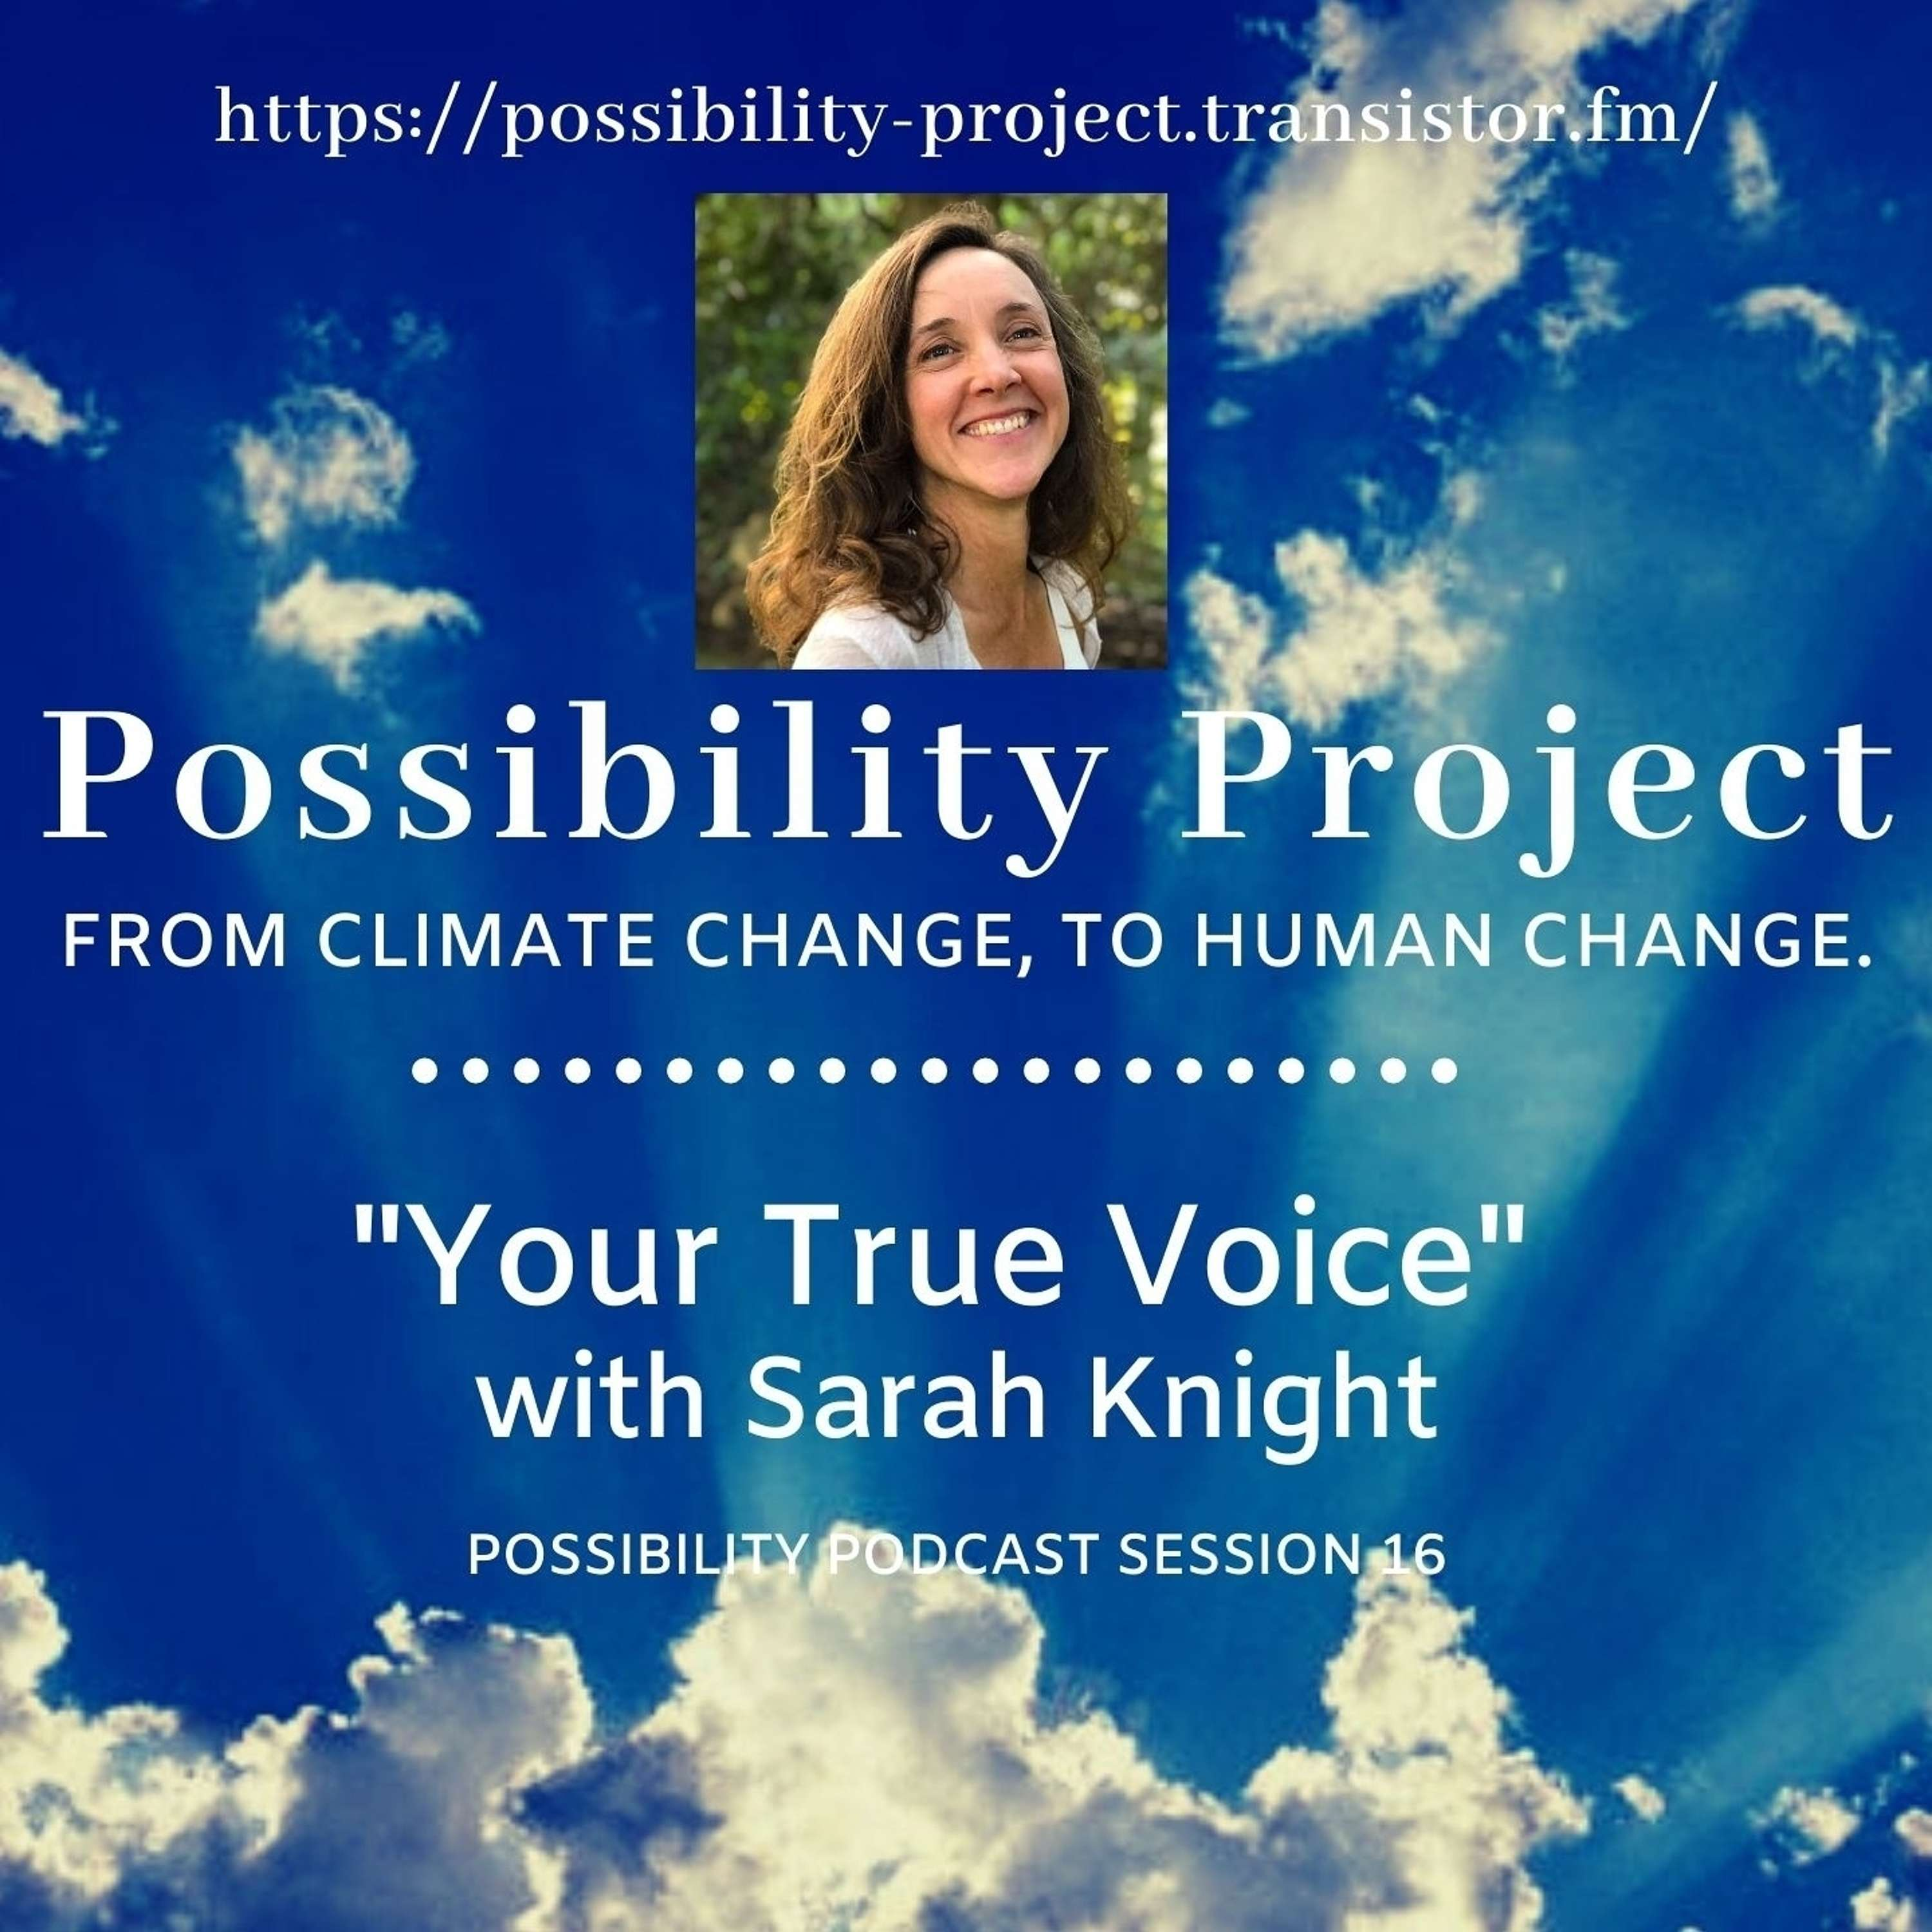 Your True Voice. Possibility Podcast Session 16